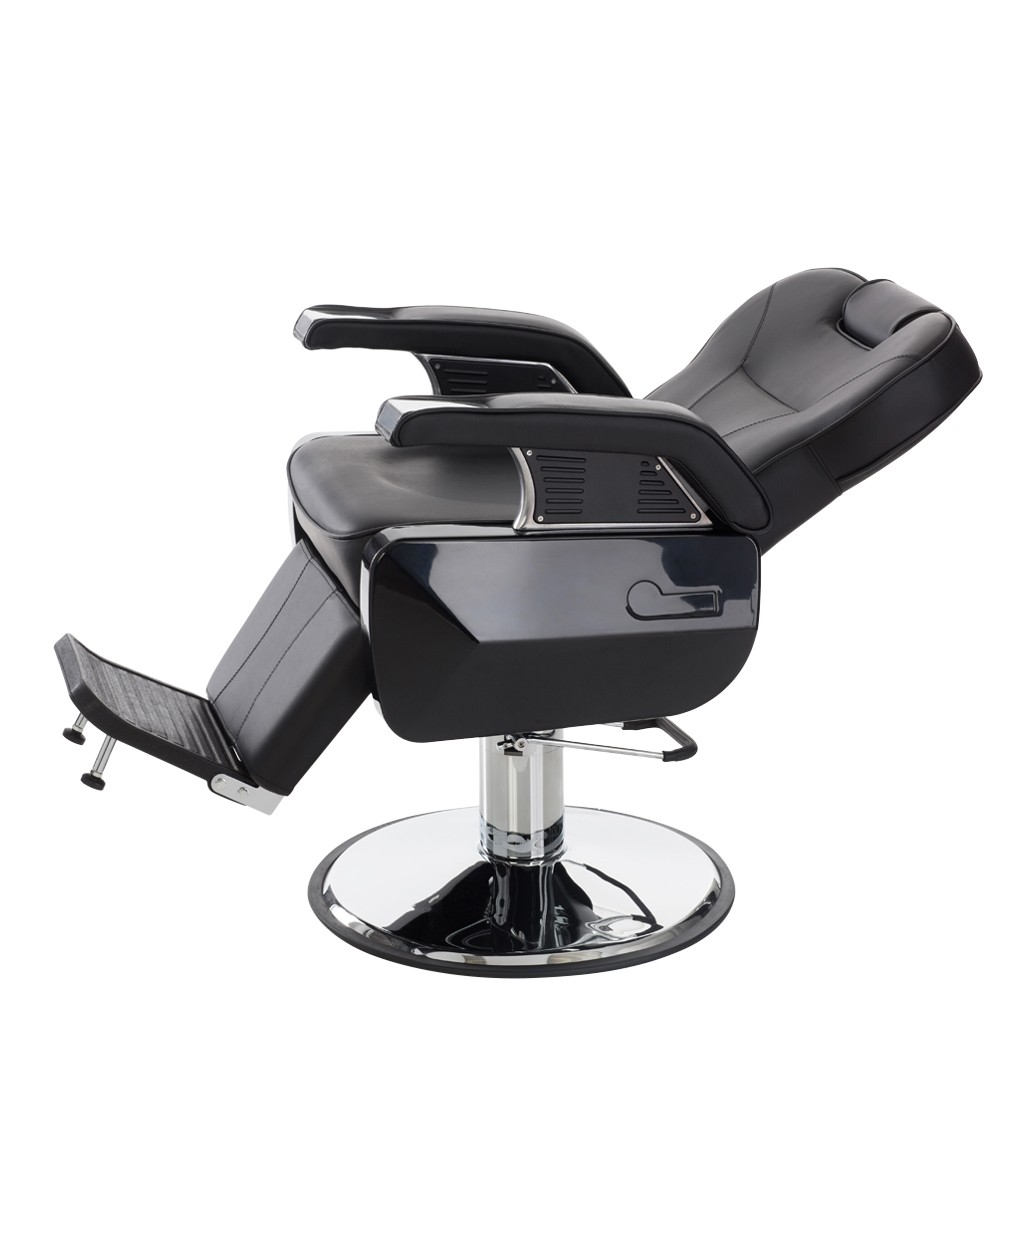 Big-D Deluxe Barber Chair